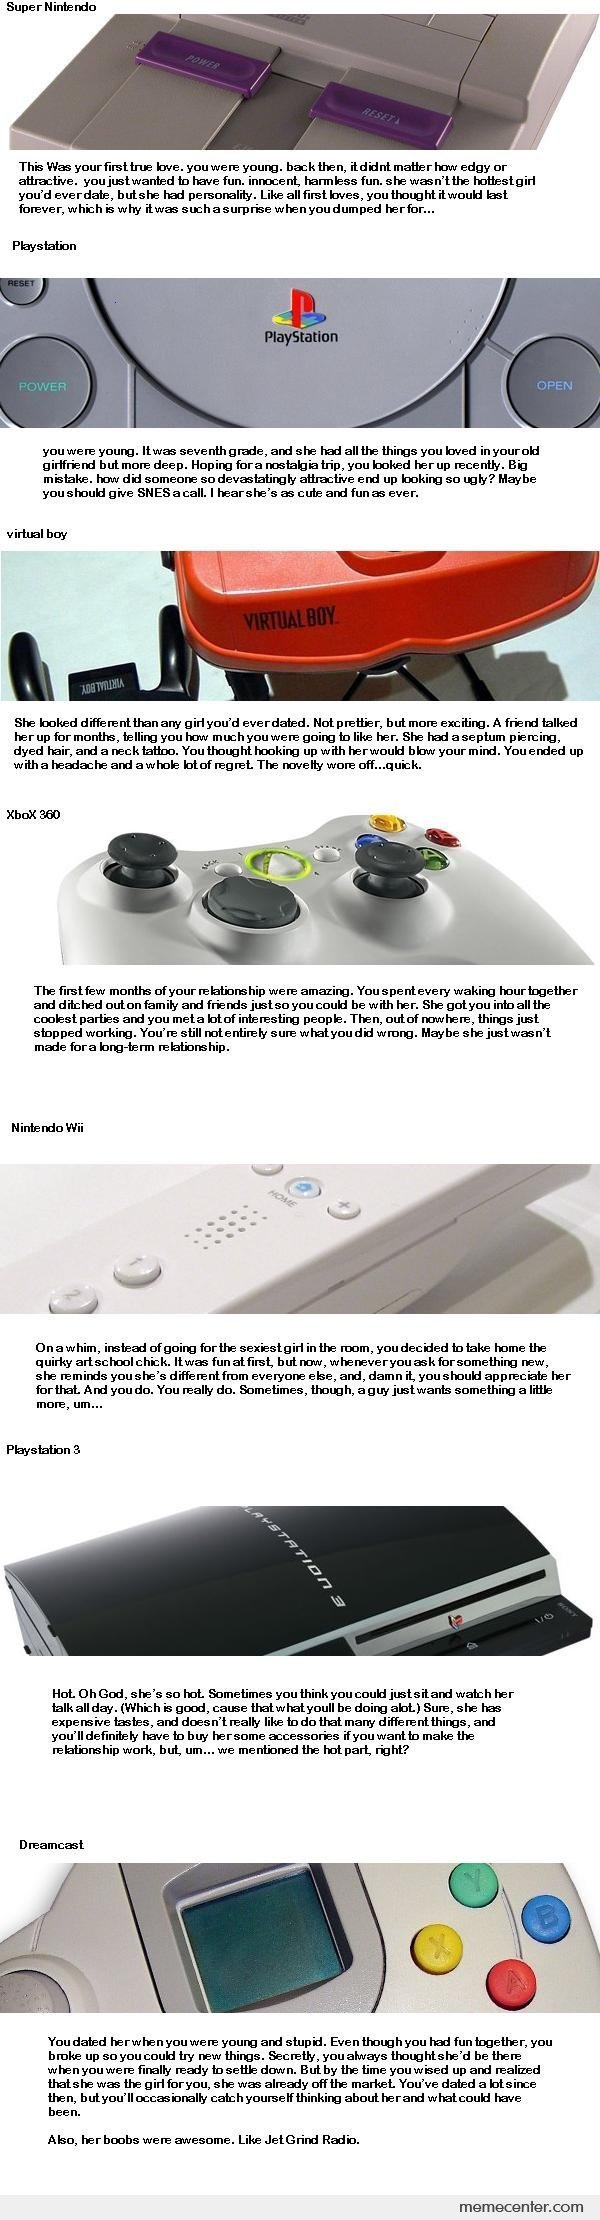 If women were video game consoles